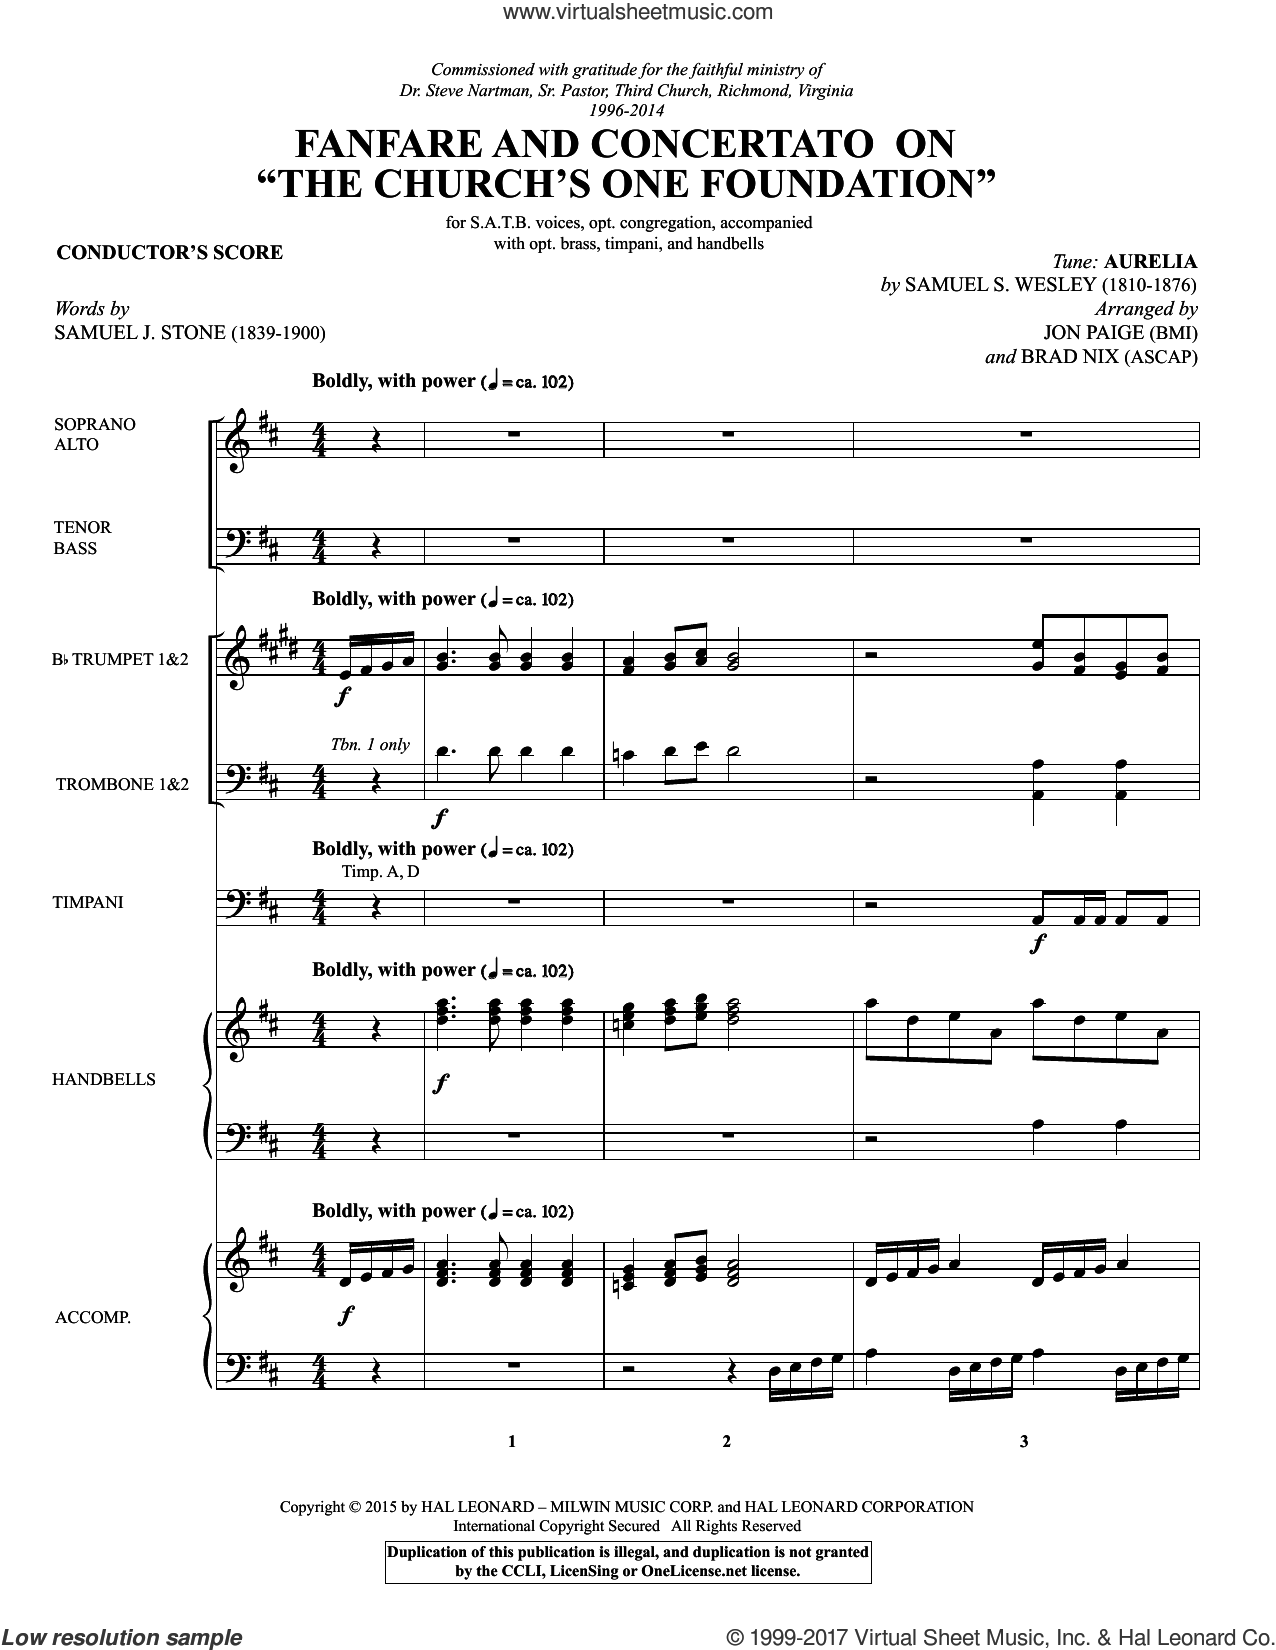 Fanfare and Concertato on 'The Church's One Foundation' (COMPLETE) sheet music for orchestra/band by Brad Nix, Jon Paige, Samuel J. Stone, Samuel John Stone, Samuel S. Wesley and Samuel Sebastian Wesley, intermediate skill level